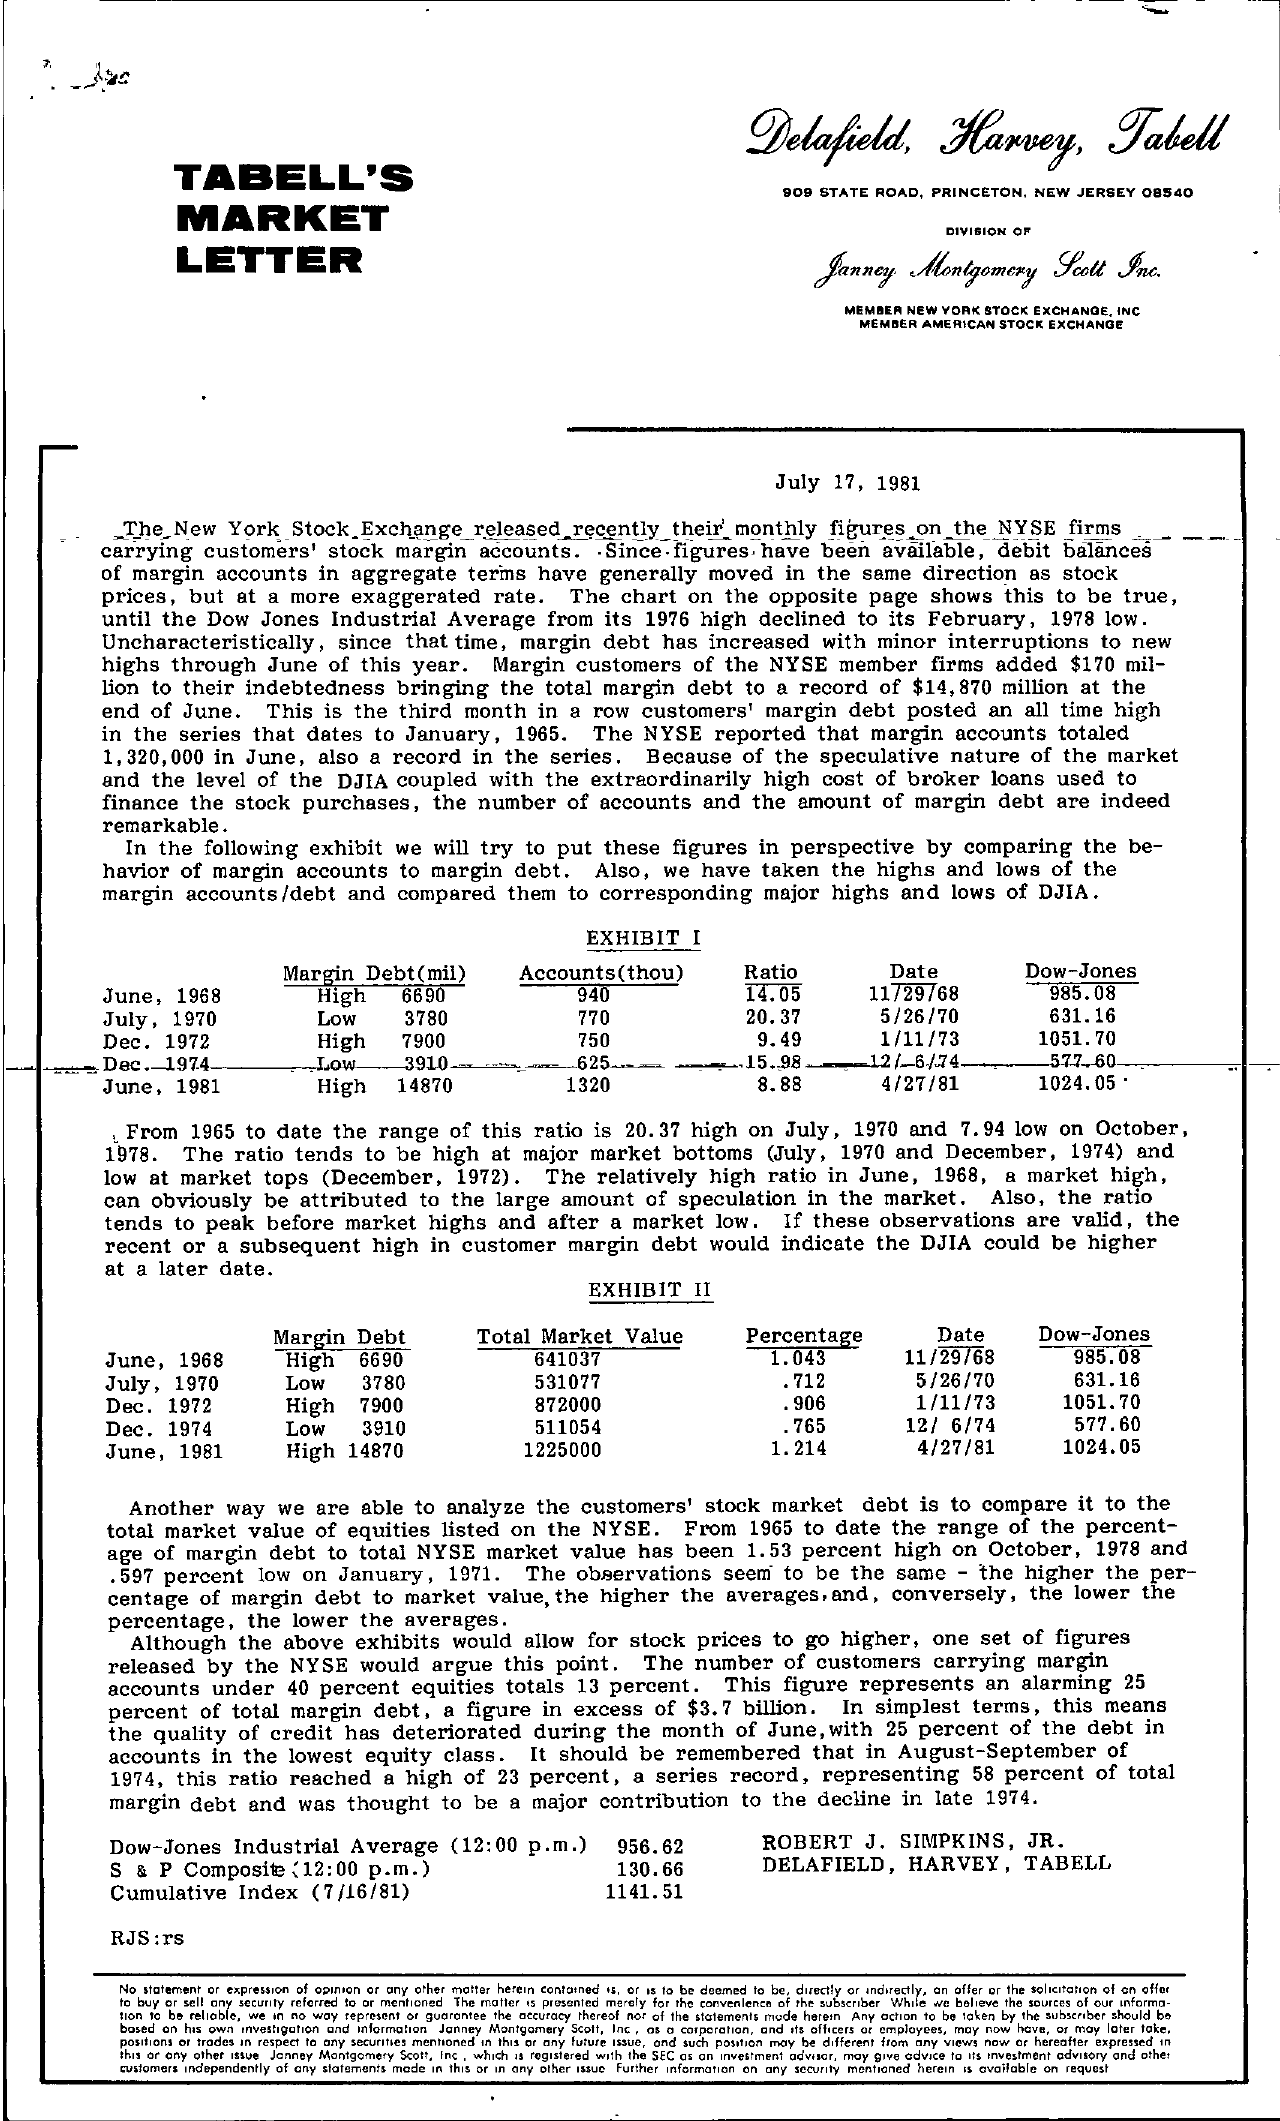 Tabell's Market Letter - July 17, 1981 page 1